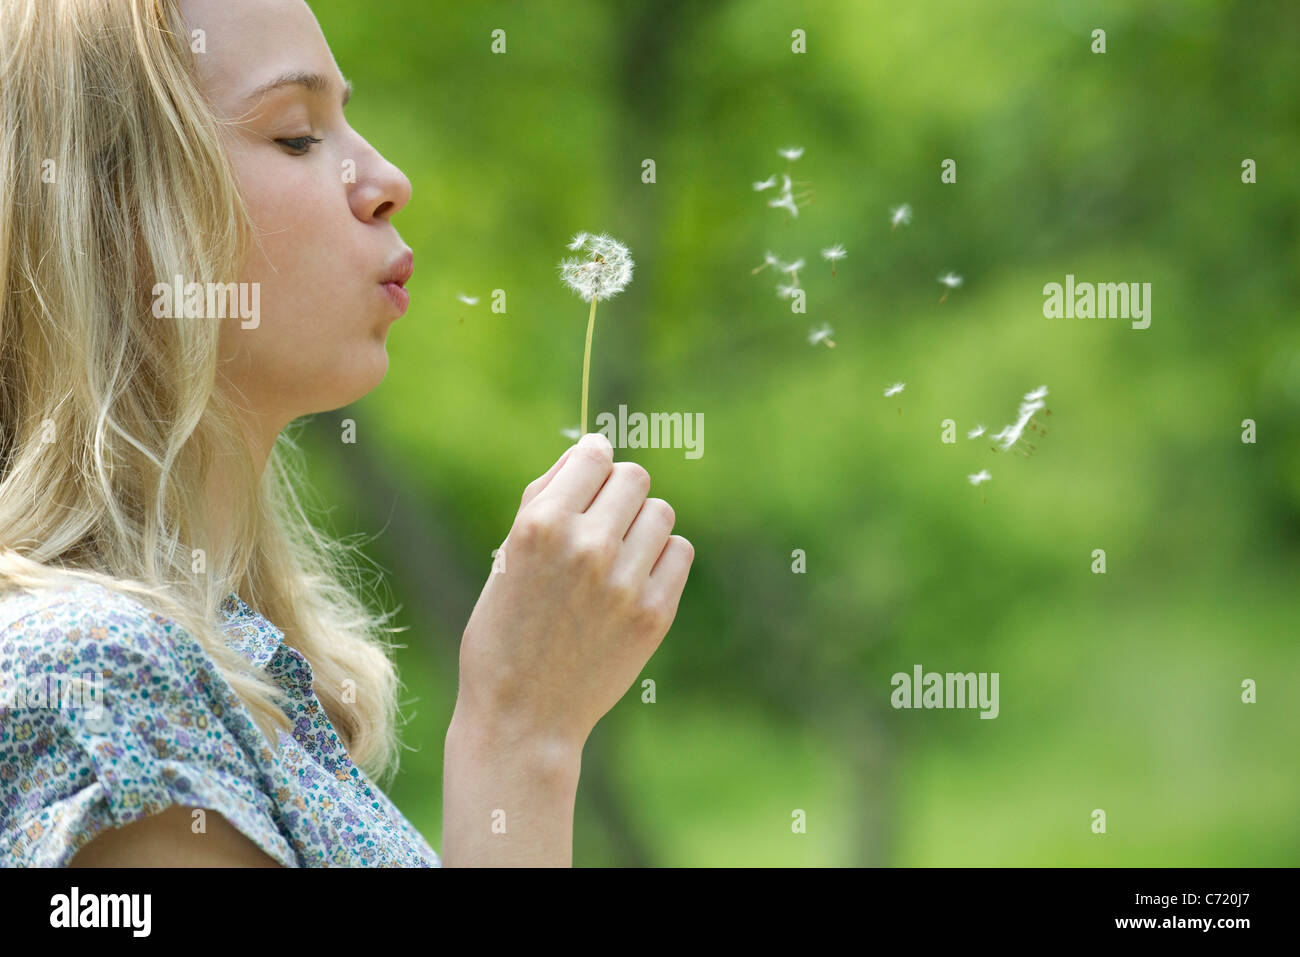 Young woman blowing dandelion flower - Stock Image